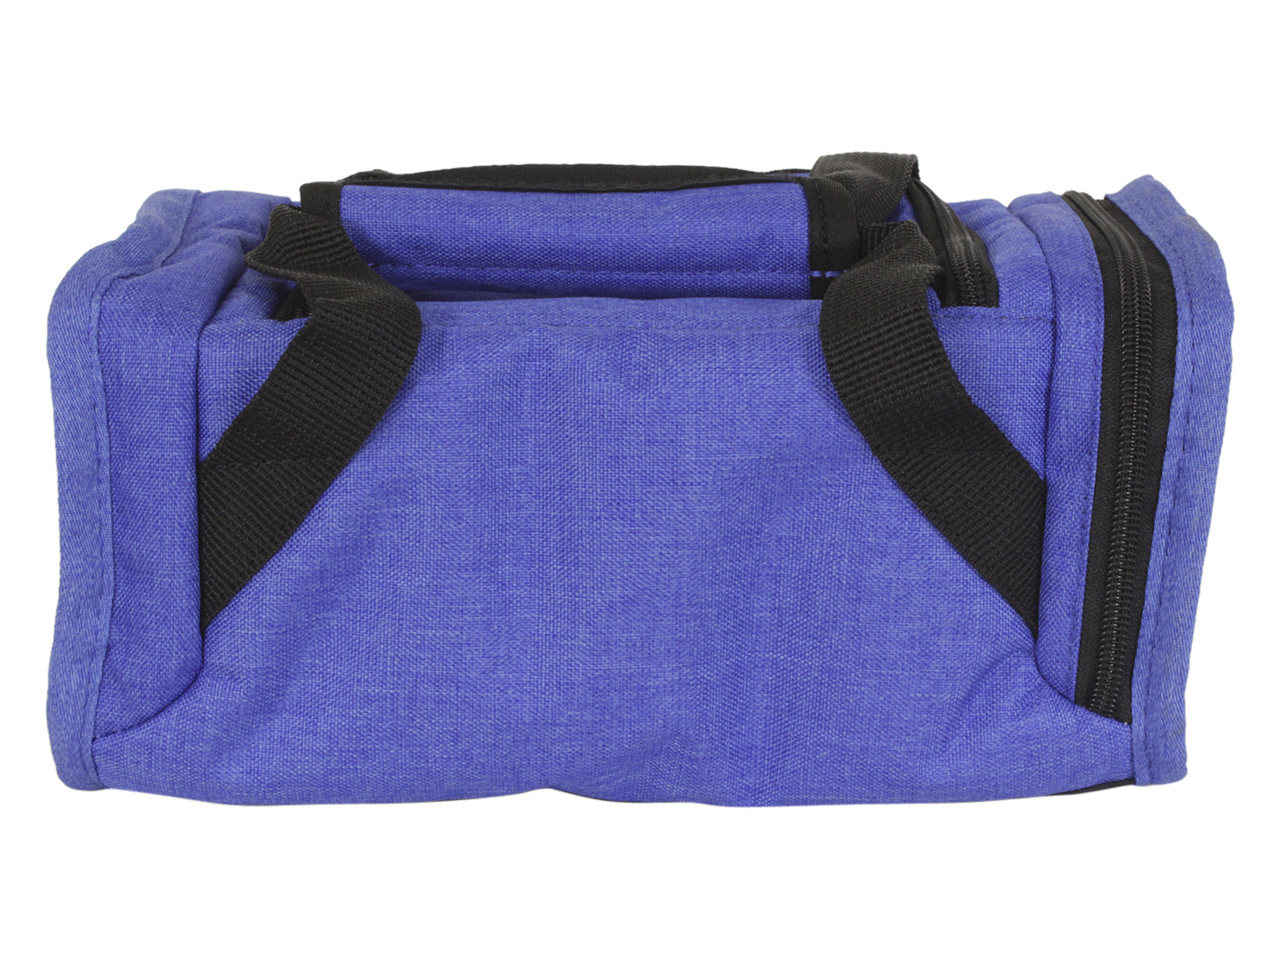 Nike-Deluxe-Insulated-Tote-Lunch-Bag thumbnail 21